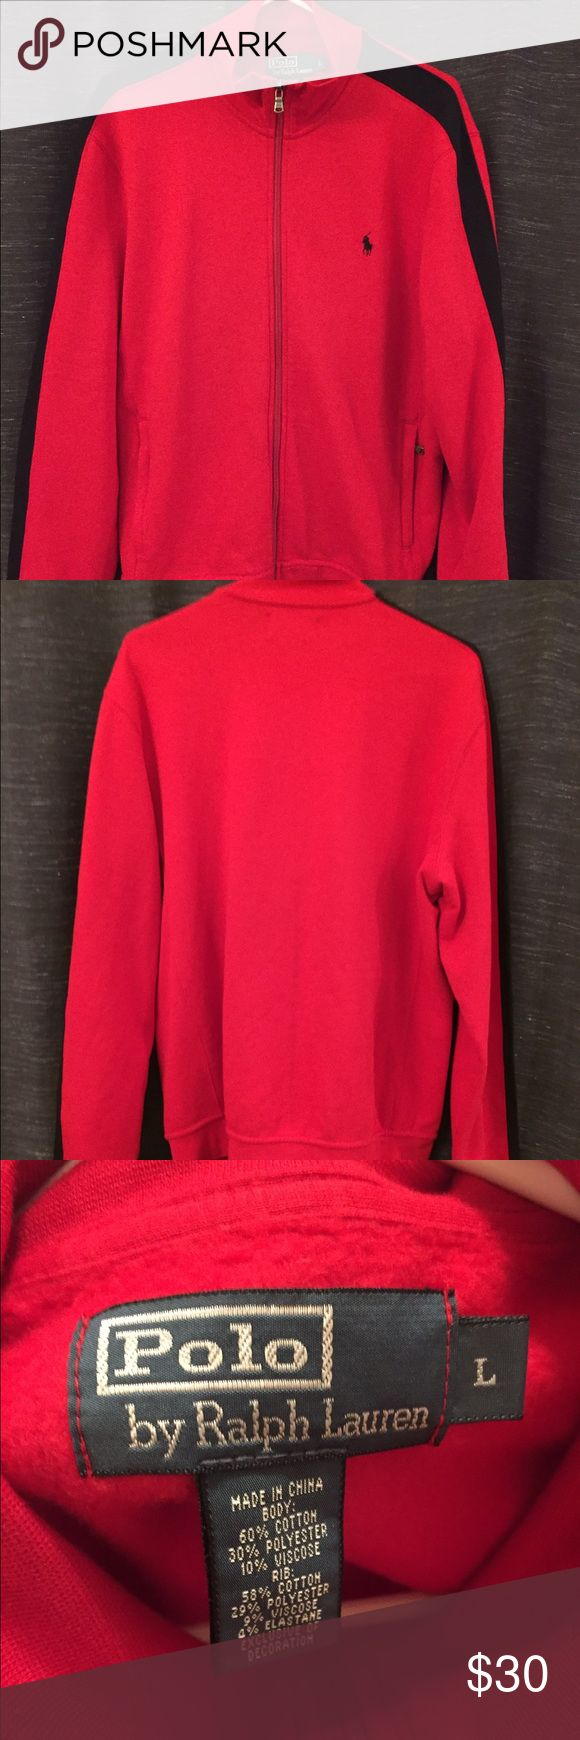 Polo by Ralph Lauren red sweater jacket Men's polo red zip up jacket. It has a black stripe along the outside of the sleeves. Zipper works great! Nice! Polo by Ralph Lauren Sweaters Zip Up